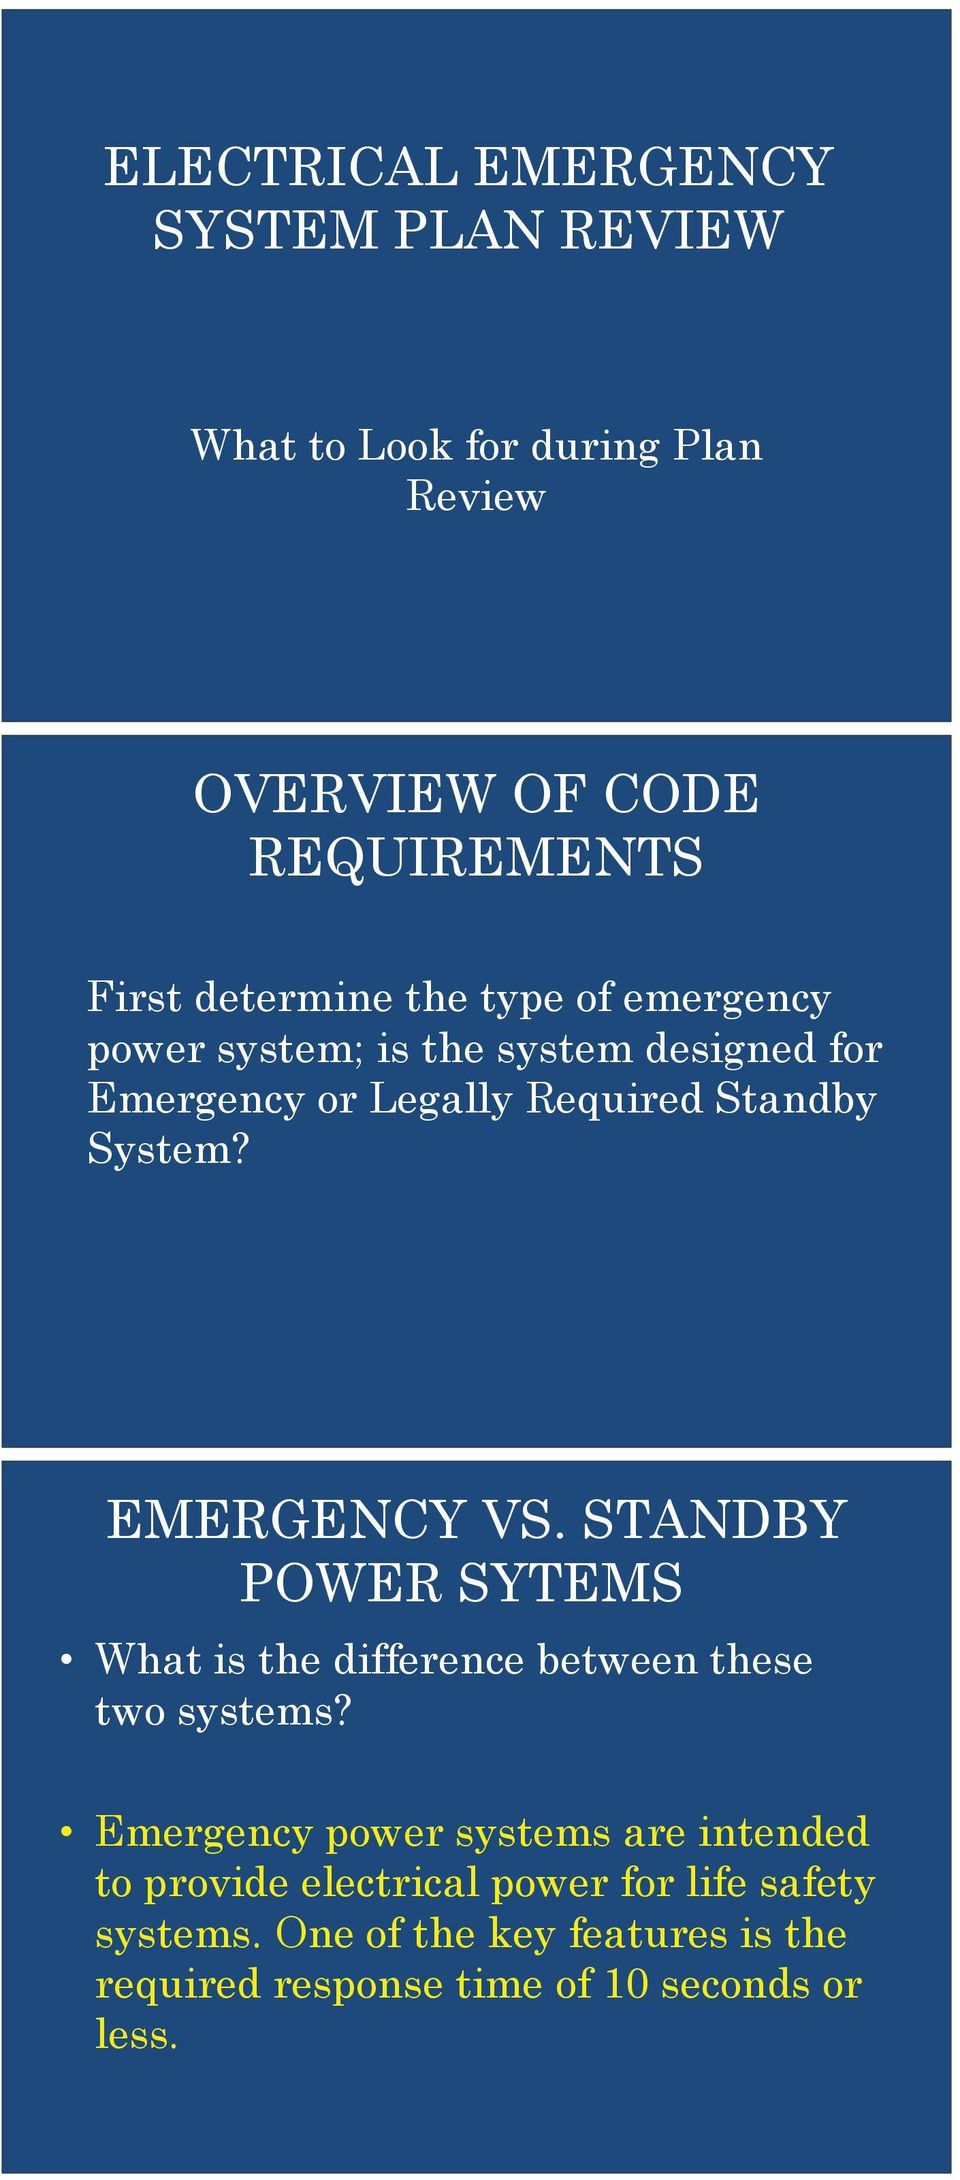 EMERGENCY VS. STANDBY POWER SYTEMS What is the difference between these two systems?